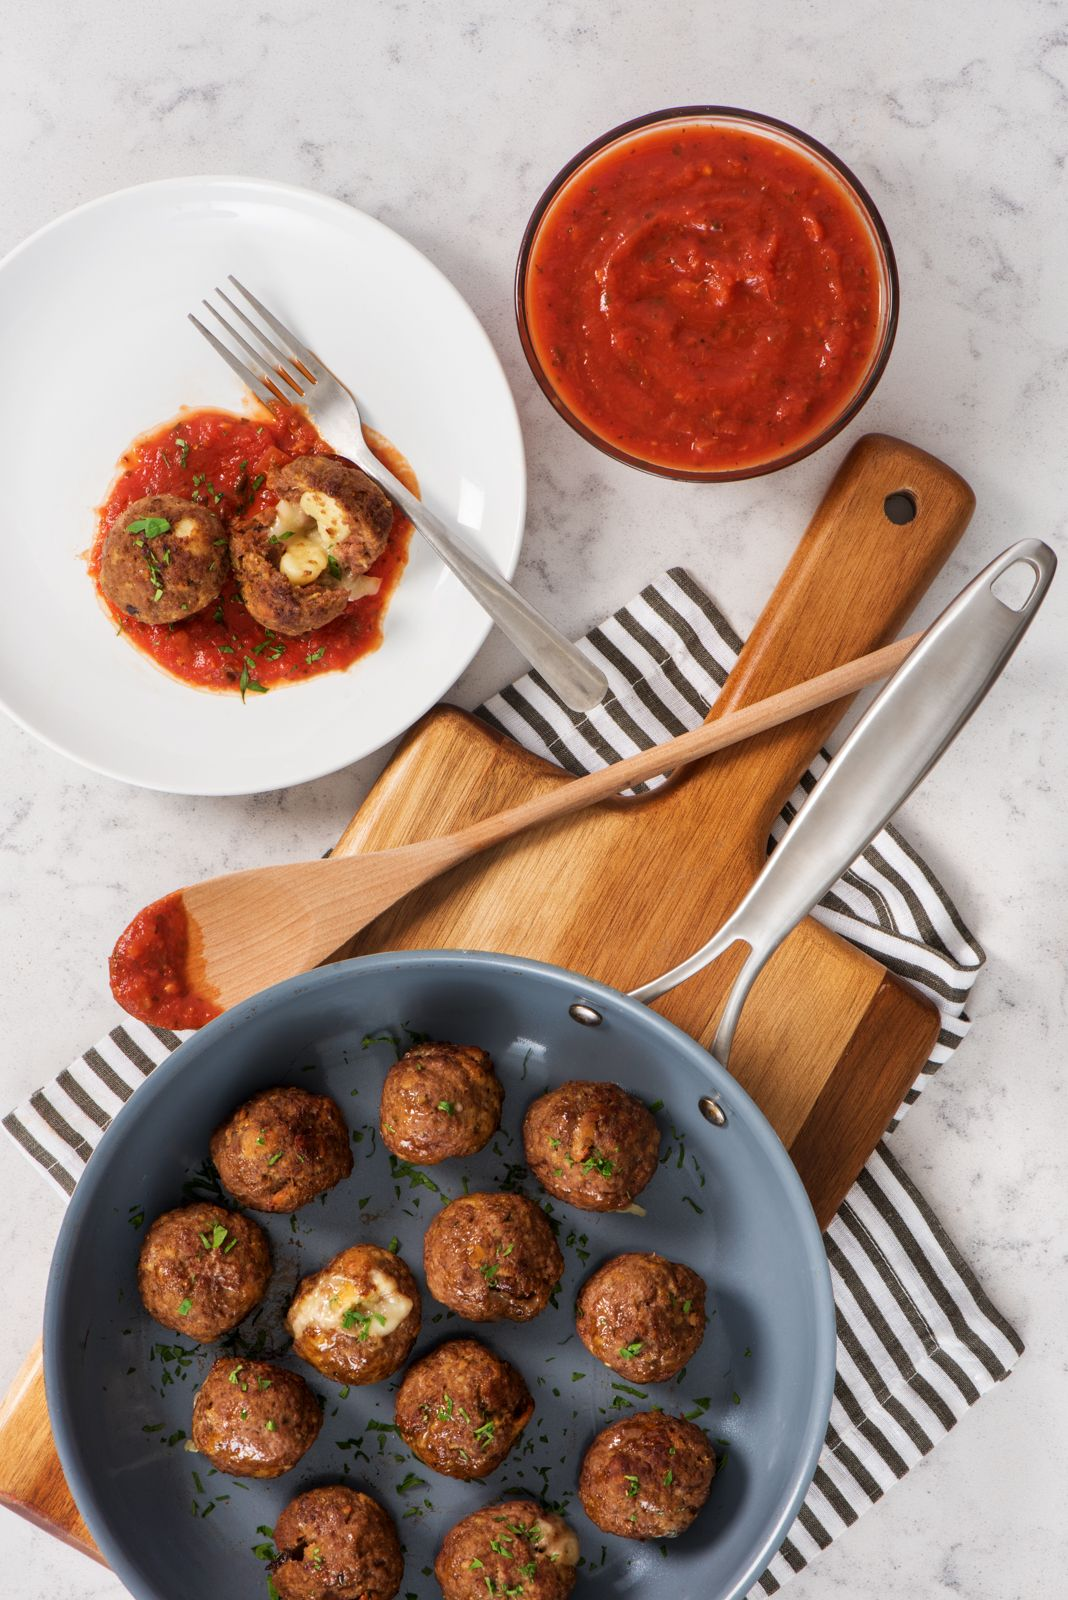 What's better than meatballs? Meatballs stuffed with gnocchi and cheese! Get this family-friendly appetizer recipe.